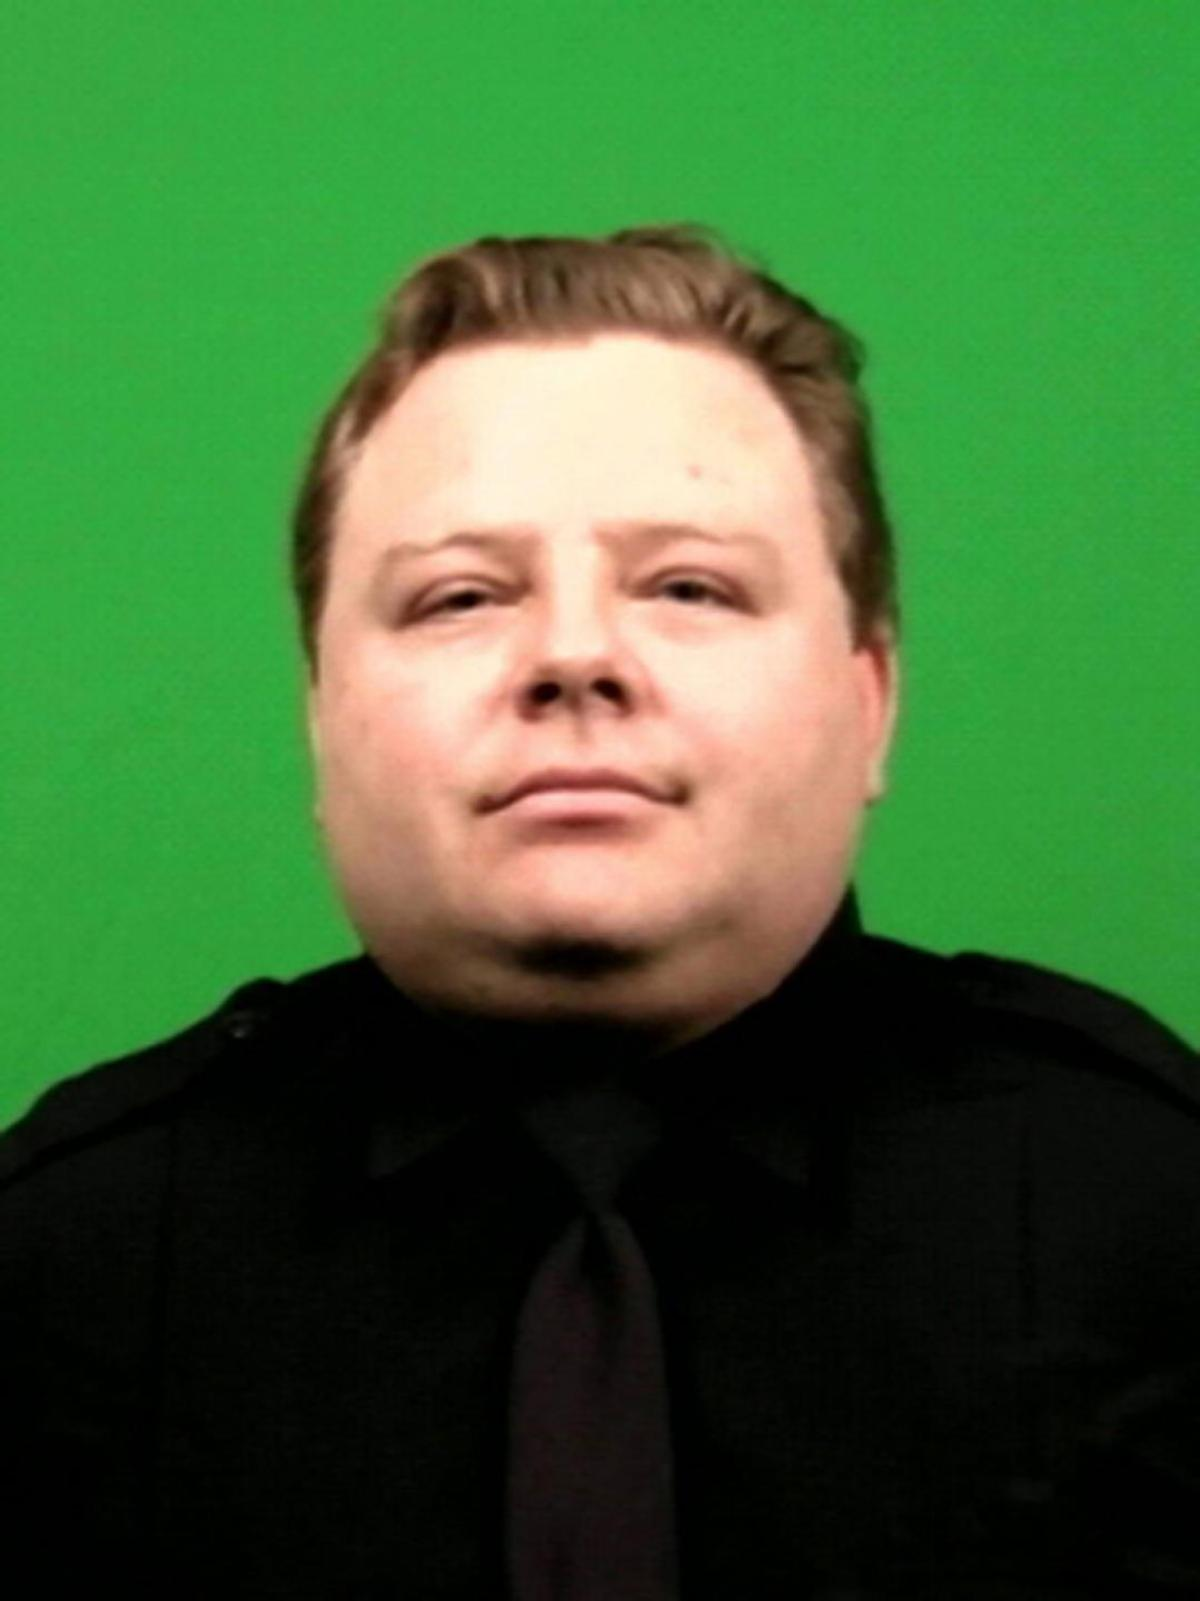 NYPD Officer Alerted Wisconsin Police About Imminent Attack